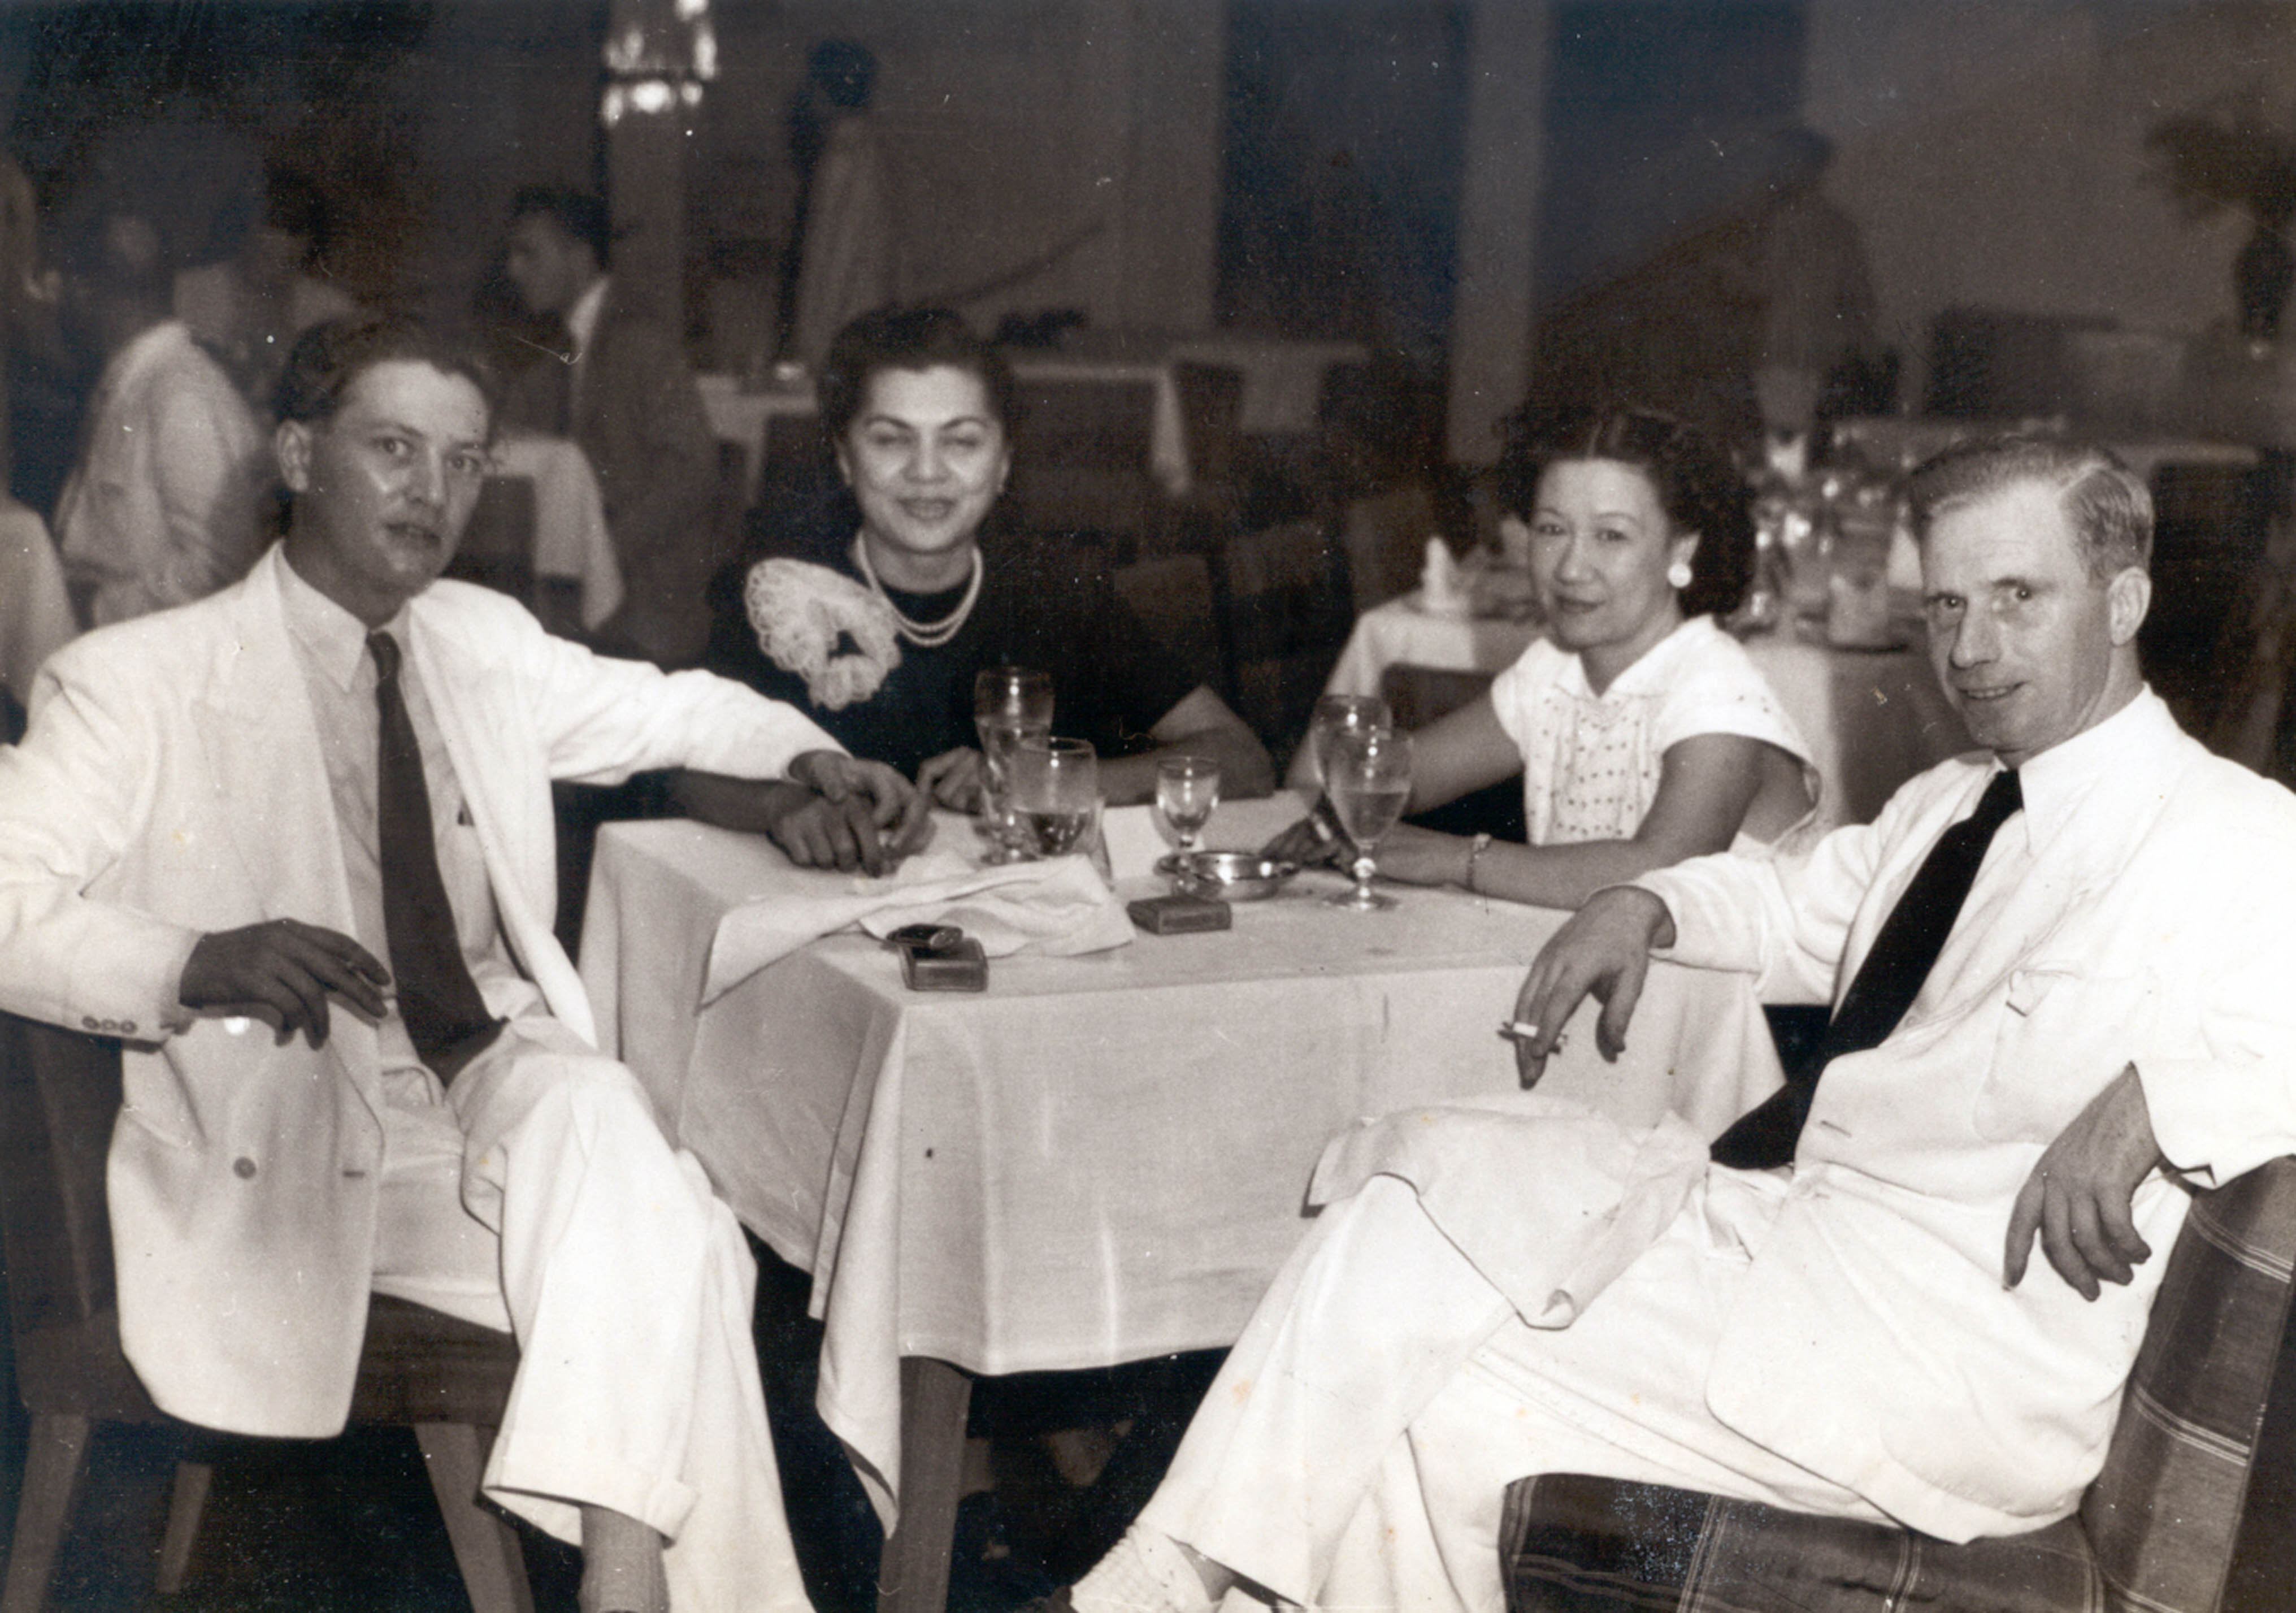 Billie and her friend Edie had dinner with Pembroke Stephens (left) of The Daily Telegraph and O'Dowd Gallagher of The Daily Express.